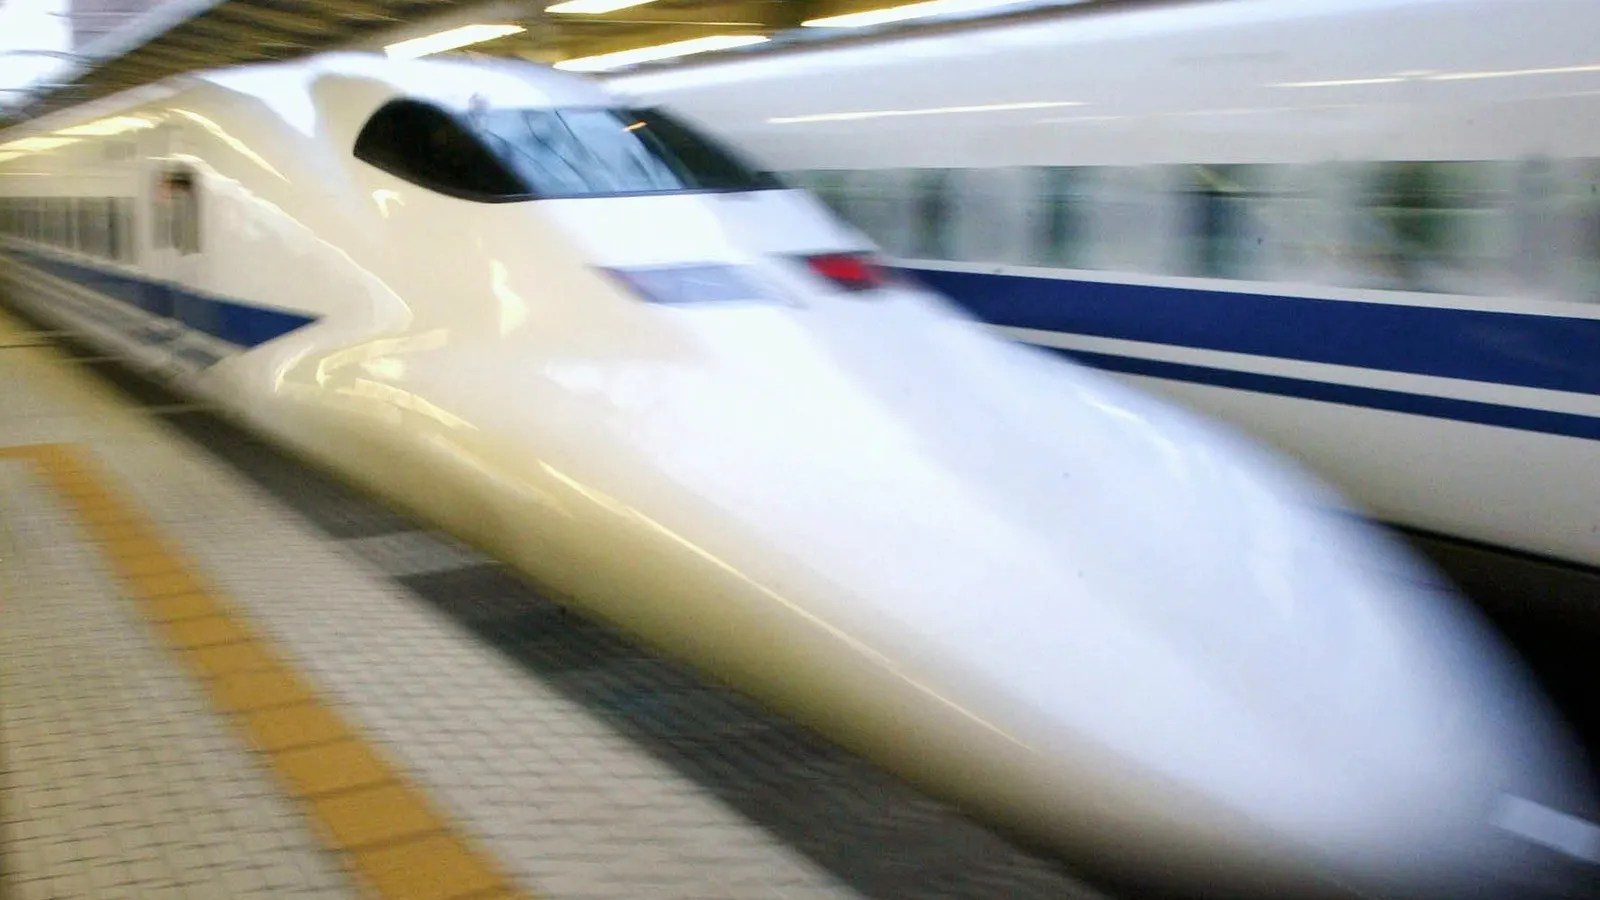 Police Find Human Body Parts In Crack In Japanese Bullet Train S Nose